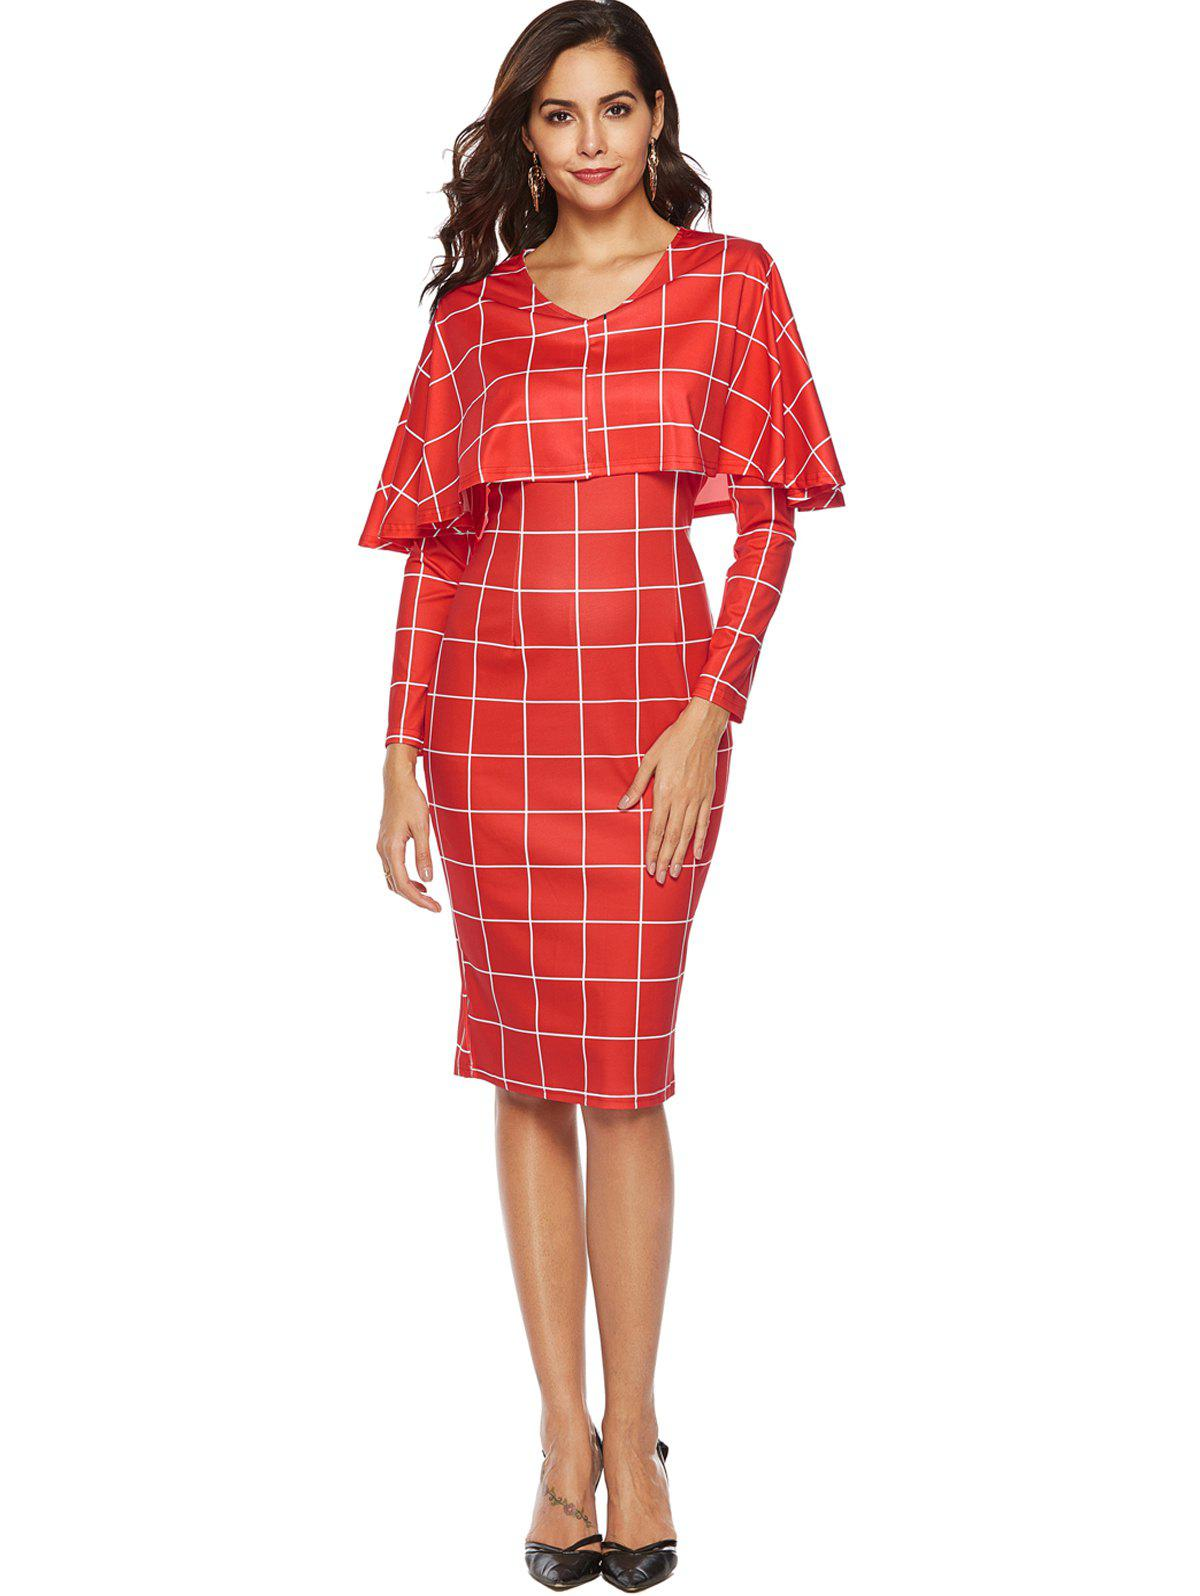 Chic Plaid Cape Bodycon Dress